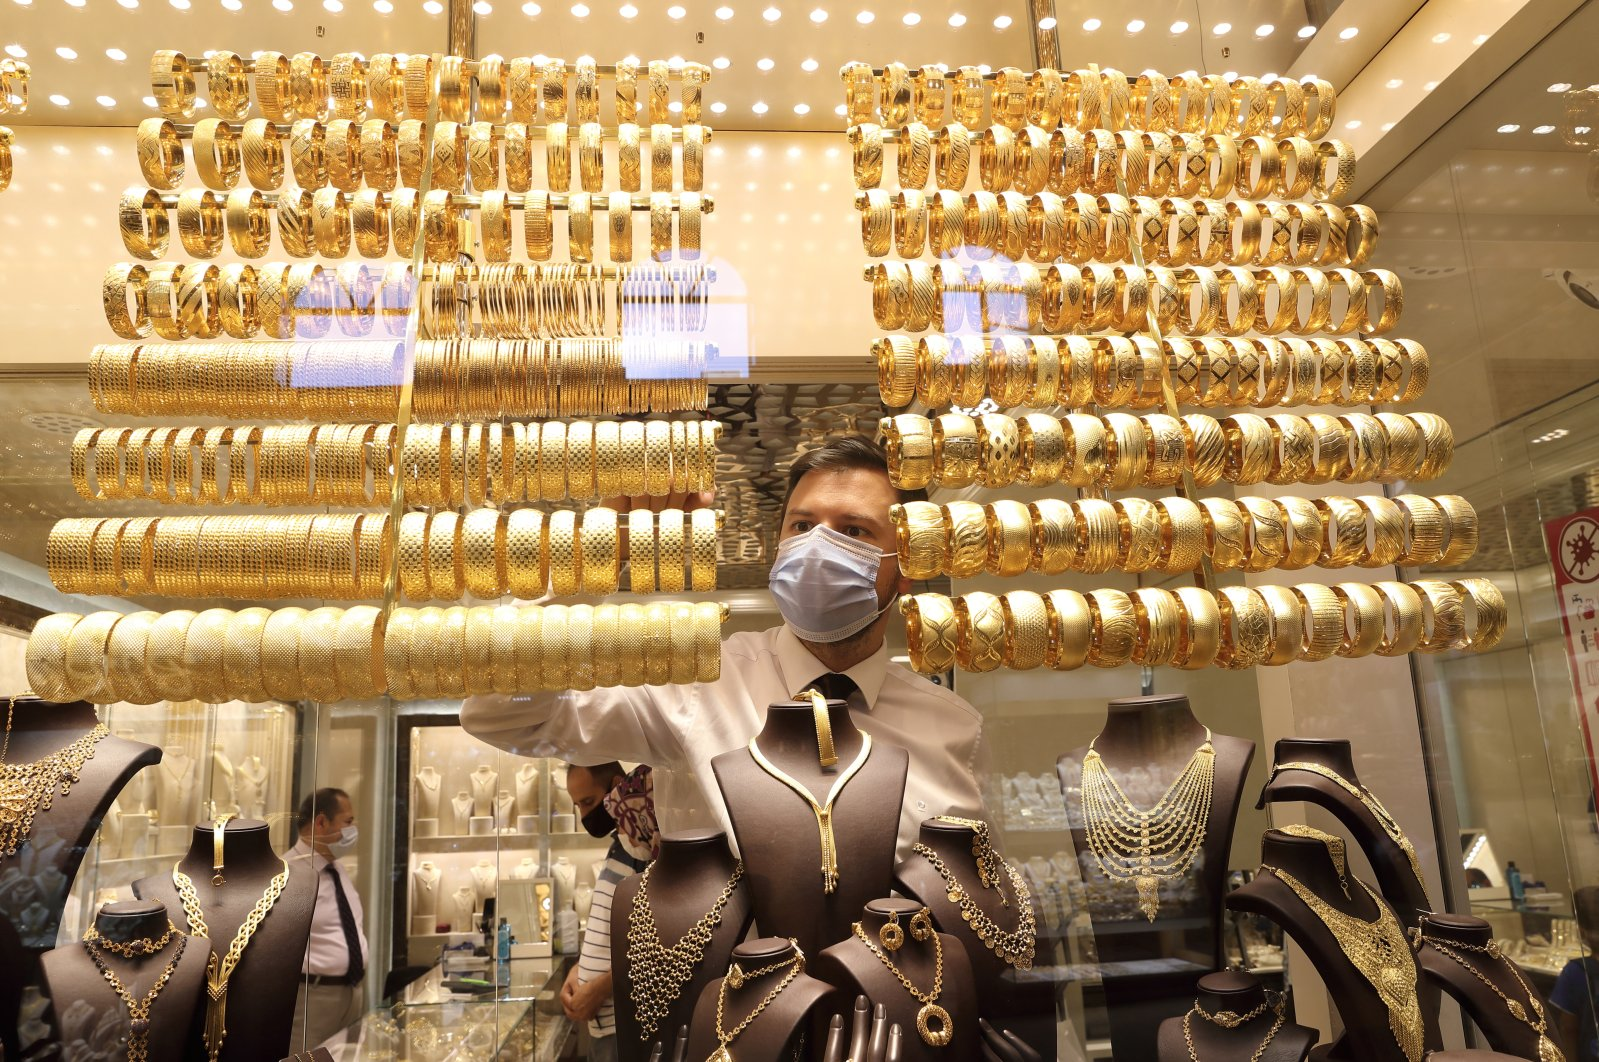 A goldsmith wearing a protective face mask arranges golden bangles as the other talks to customers at a jewelry shop at the Grand Bazaar in Istanbul, Turkey, Aug. 6, 2020. (Reuters Photo)